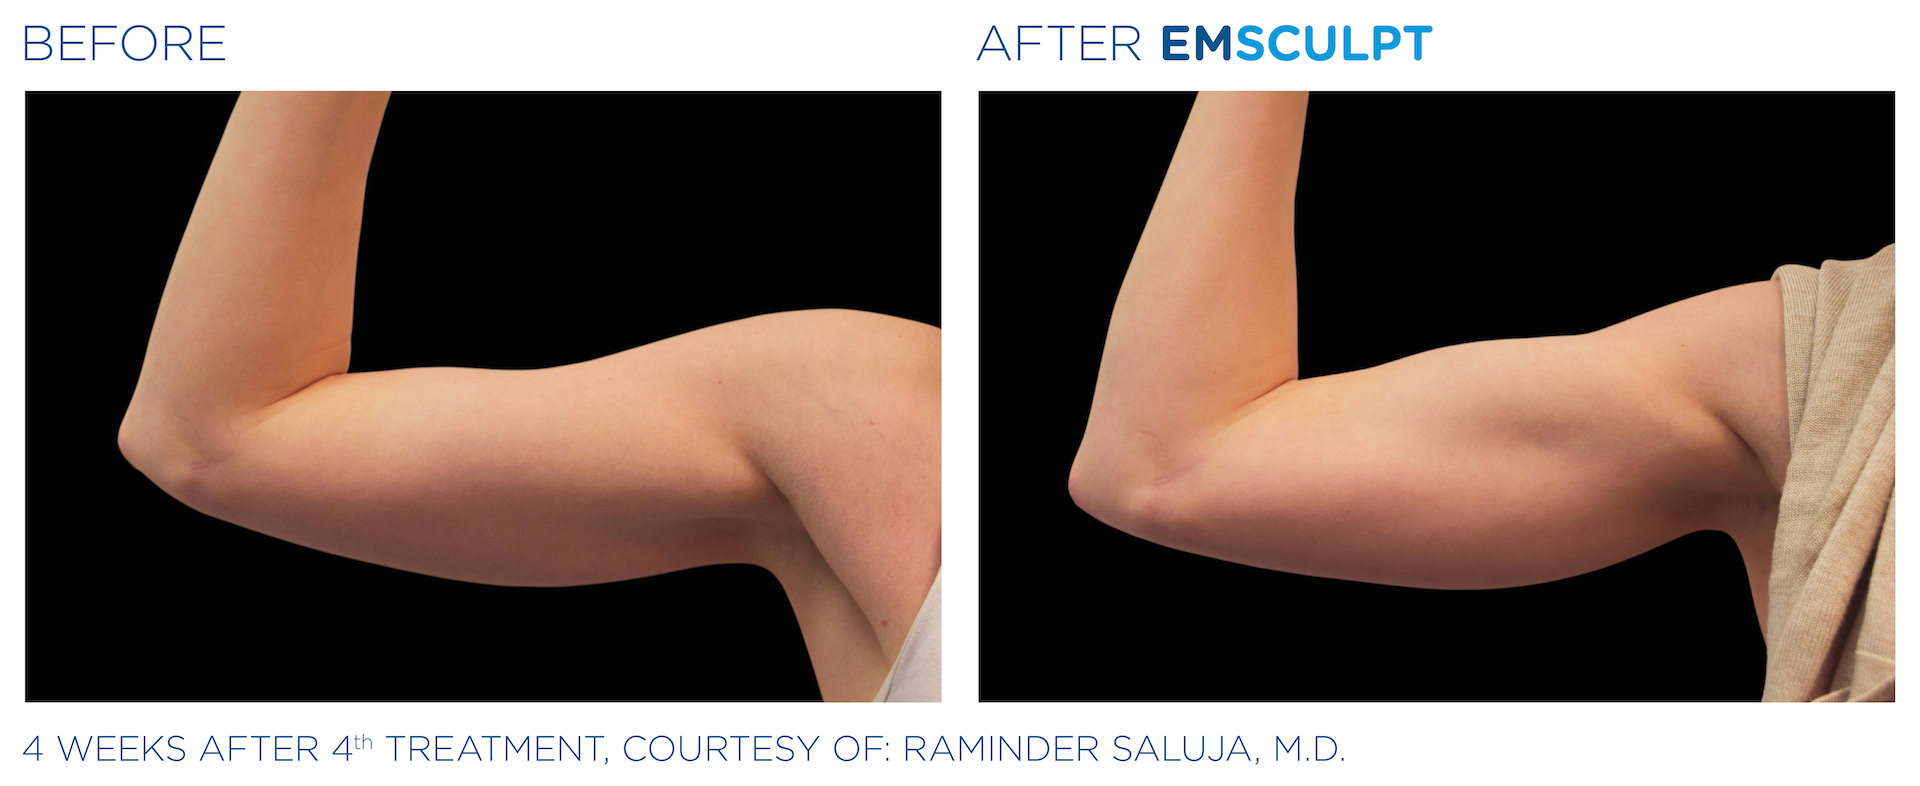 emsculpt before and after arms the sophia medspa in sudbury MA